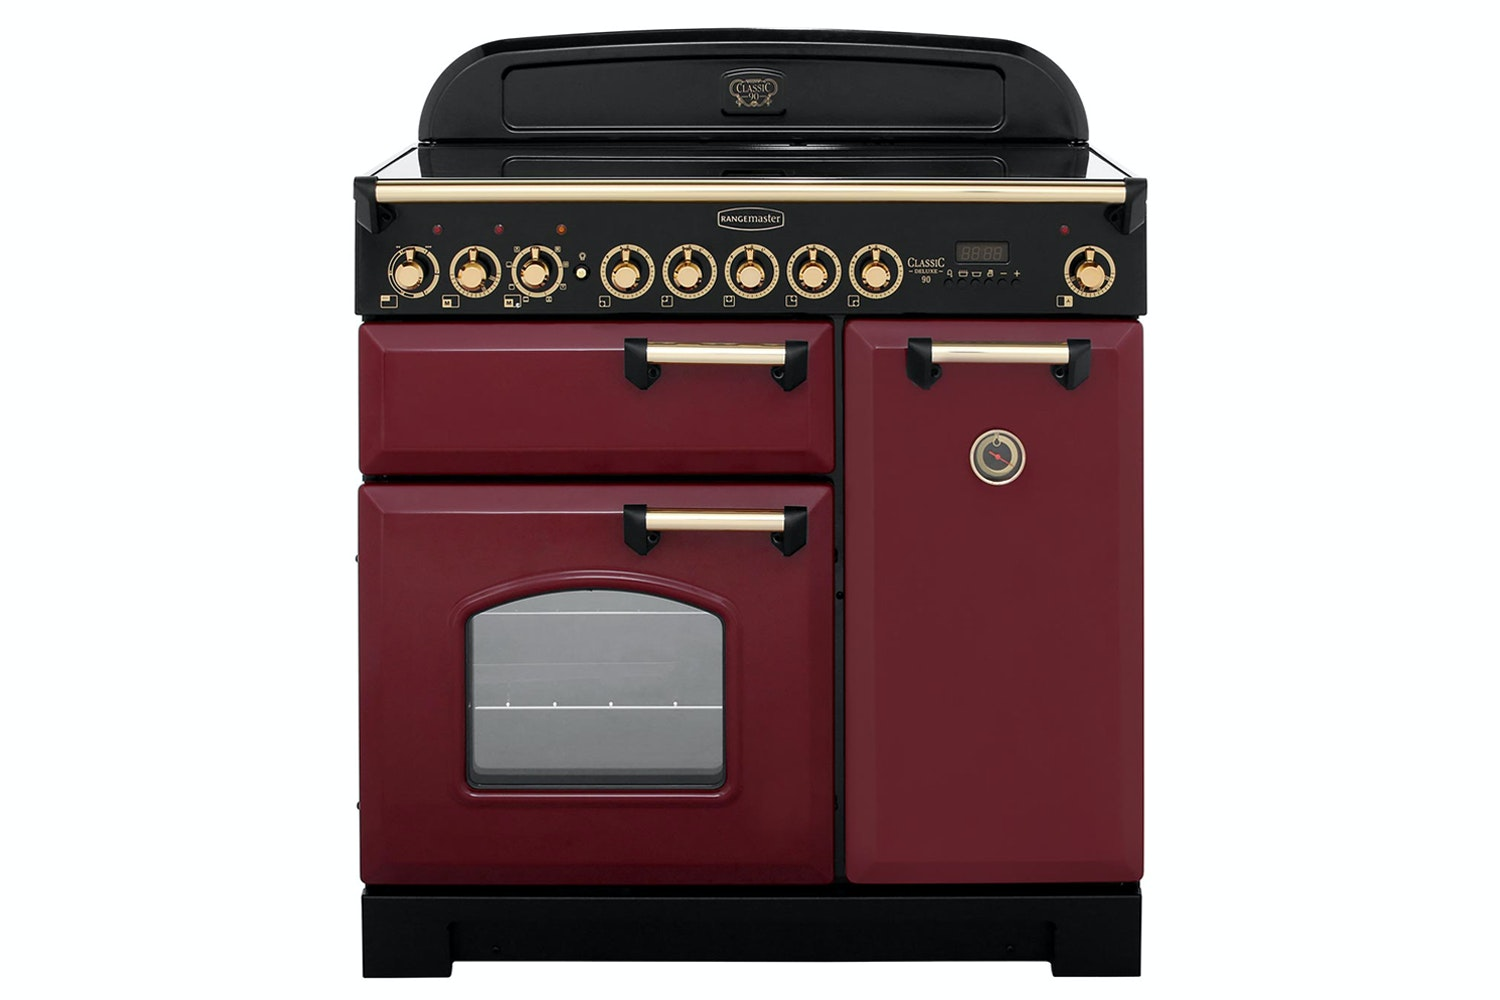 Rangemaster Classic 90cm Induction Range Cooker | CDL90EICY/B | Cranberry